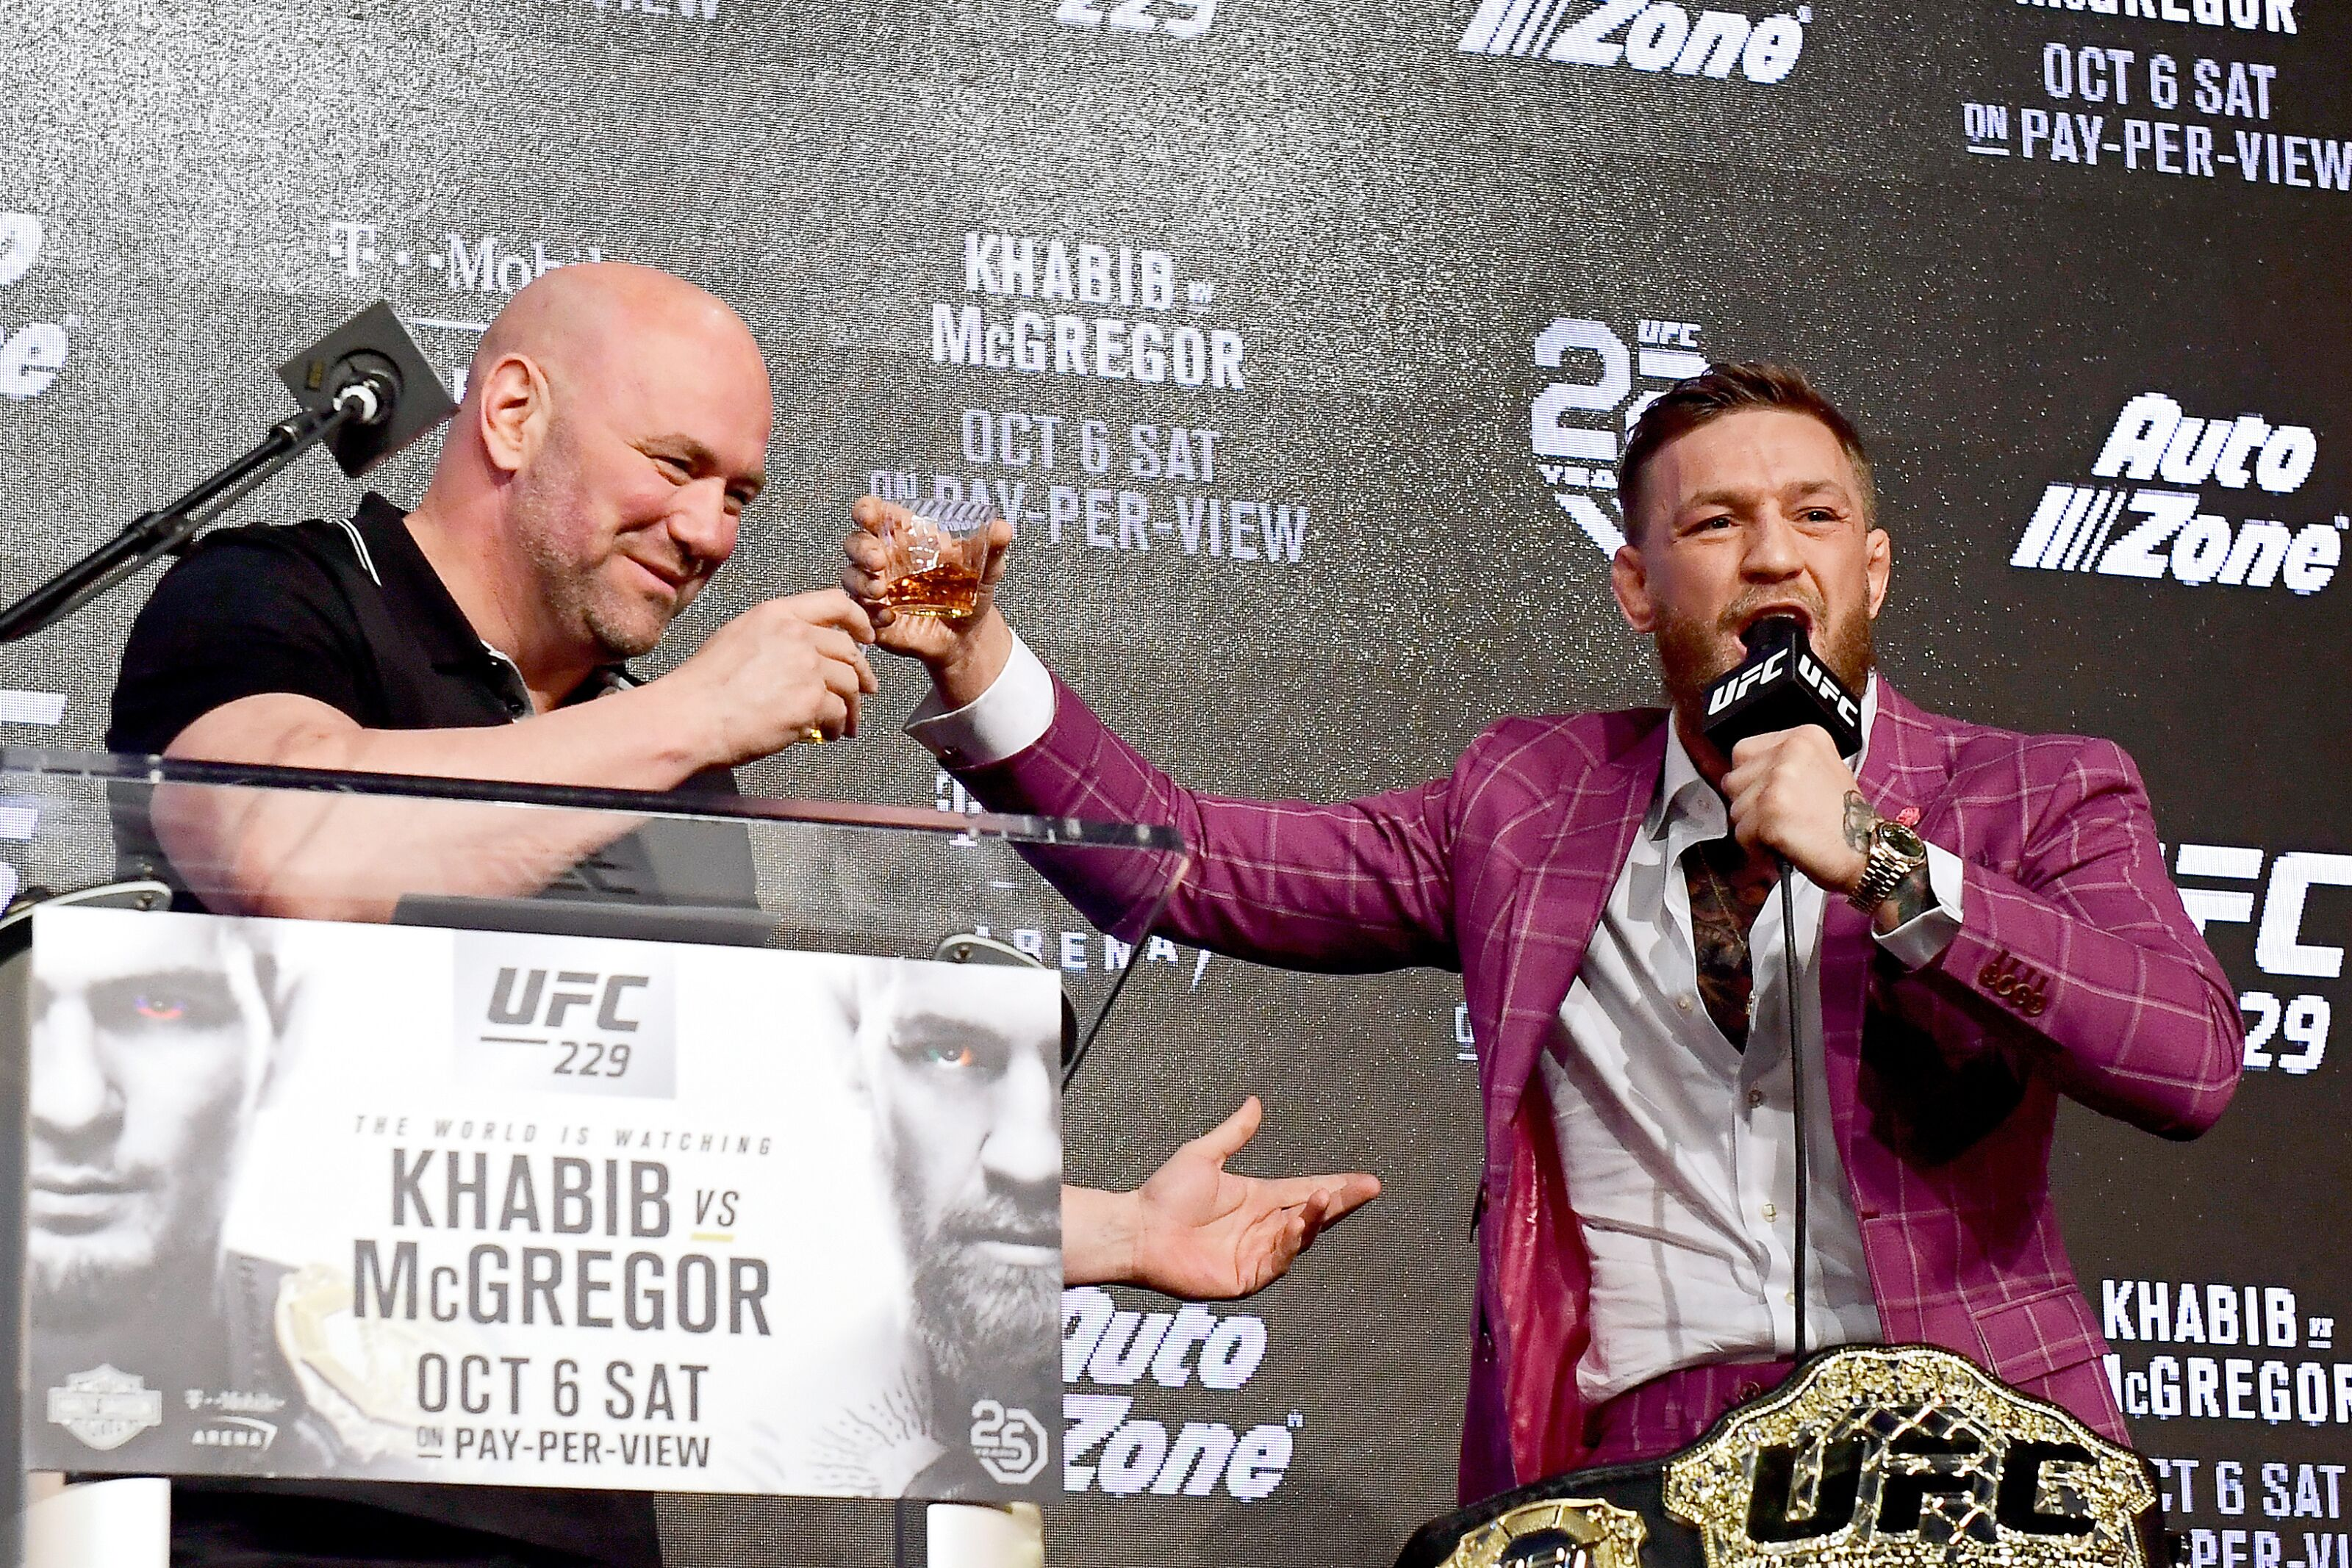 What's wrong with a Conor McGregor vs. Frankie Edgar fight?